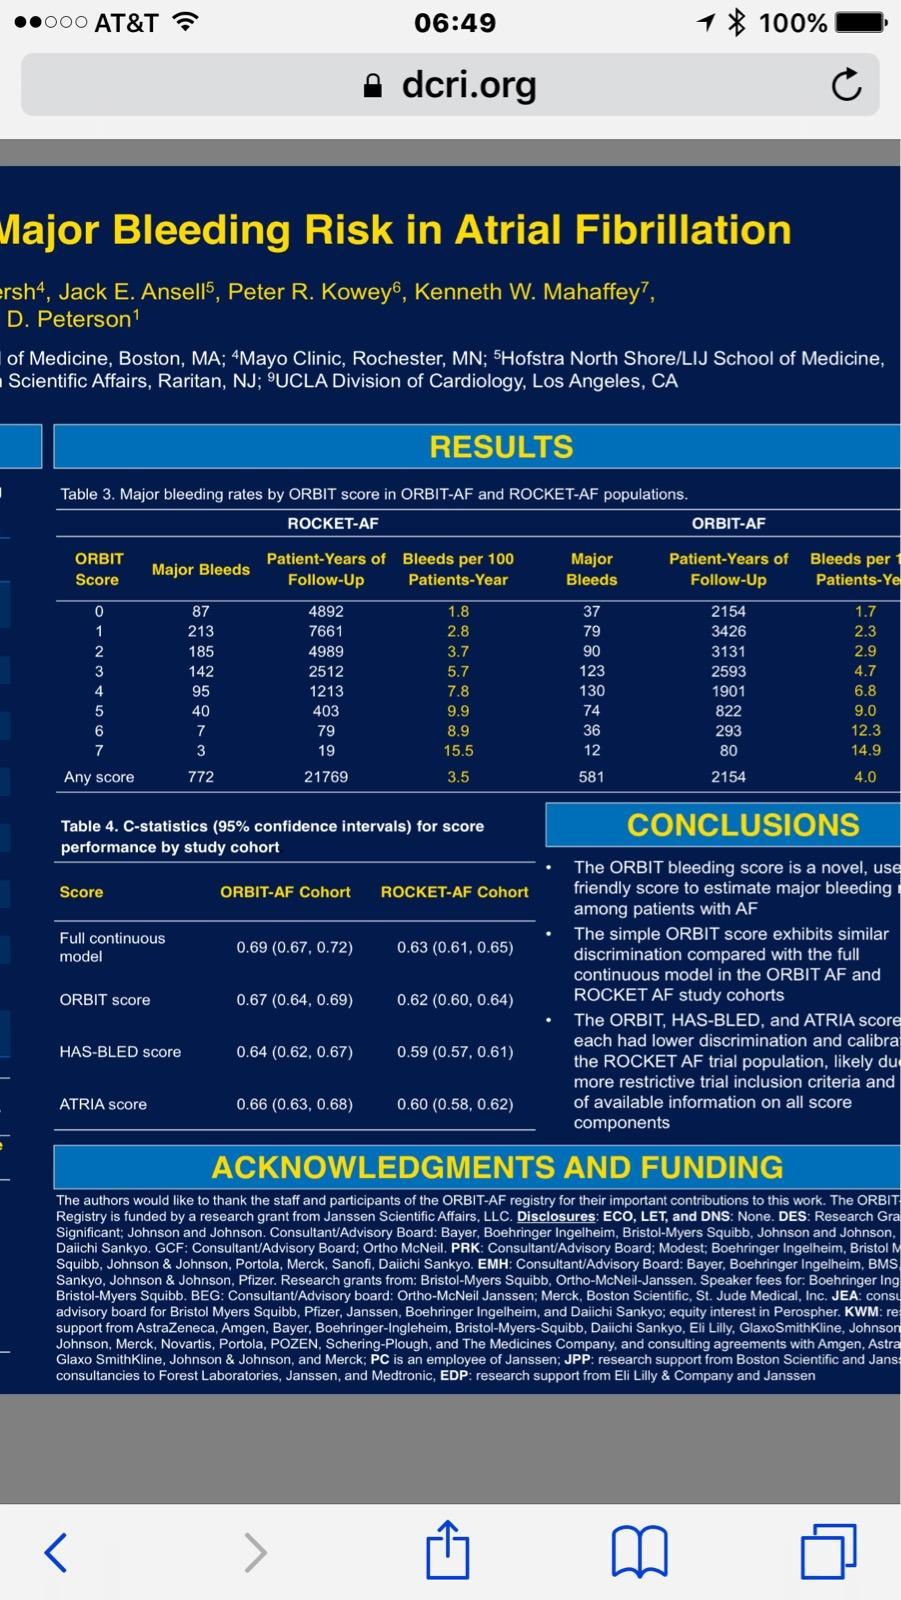 Machine generated alternative text: OAT&T 06:49 a dcri.org 'lajor Bleeding Risk in Atrial Fibrillation TSh4, Jack E. Anse115, Peter R. Kowey6, Kenneth W. Mahaffey7, D. Petersonl of Medicine, Boston, MA; 4Mayo Clinic, Rochester, MN: 5Hofstra North Shore/LlJ School of Medicine, I Scientific Affairs, Raritan, NJ; 91JCLA Division of Cardiology, Los Angeles, CA RESULTS Table 3. Major bleeding rates by ORBIT score in ORBIT-AF and ROCKET-AF populations. Bleeds per Patients-Y 1.7 2.3 2.9 4.7 6.8 9.0 12.3 14.9 4.0 ROCKET-AF ORBIT Patient-years Of Bleeds per 100 Major Bleeds 37 79 90 123 130 74 36 12 581 ORBIT-AF Patient-years Of Follow-Up 2154 3426 3131 1901 822 293 80 2154 Score 2 3 4 5 6 7 Any score Major Bleeds 87 213 185 142 95 40 7 3 772 Follow-Up 4892 7661 4989 2512 1213 403 79 19 21769 Patients-year 1.8 2.8 3.7 5.7 7.8 9.9 8.9 15.5 3.5 CONCLUSIONS The ORBIT bleeding score is a novel, u friendly score to estimate major bleeding among patients with AF The simple ORBIT score exhibits similar discrimination compared with the full continuous model in the ORBIT AF and ROCKET AF study cohorts The ORBIT, HAS-BLED, and ATRIA sco each had lower discrimination and calibra the ROCKET AF trial population, likely du more restrictive trial inclusion criteria and of available information on all score components Table 4. C-statistics (95% confidence intervals) for score performance by study cohort ROCKET-AF Cohort 0.63 (0.61, 0.65) 0.62 (0.60, 064) 0.59 (0.57, 0.61) 0.60 (0.58, 0.62) Score Full continuous model ORBIT score HAS-BLED score ATRIA score ORBIT-AF Cohort 0.69 (0.67, 0.72) 0.67 (0.64, 0 69) 0.64 (0.62, 0.67) 0.66 (0.63, 0 68) ACKNOWLEDGMENTS AND FUNDING The authors would like to thank the staff and participants of the ORBIT-AF registry for their important contributions to this vwrk. The ORBIT Registry is funded by a research grant from Janssen Scientific Affairs, LLC. Disclosures: ECO, LET, and DNS: None. DES: Research Significant; Johnson and Johnson, Consultant/Advisory Bo